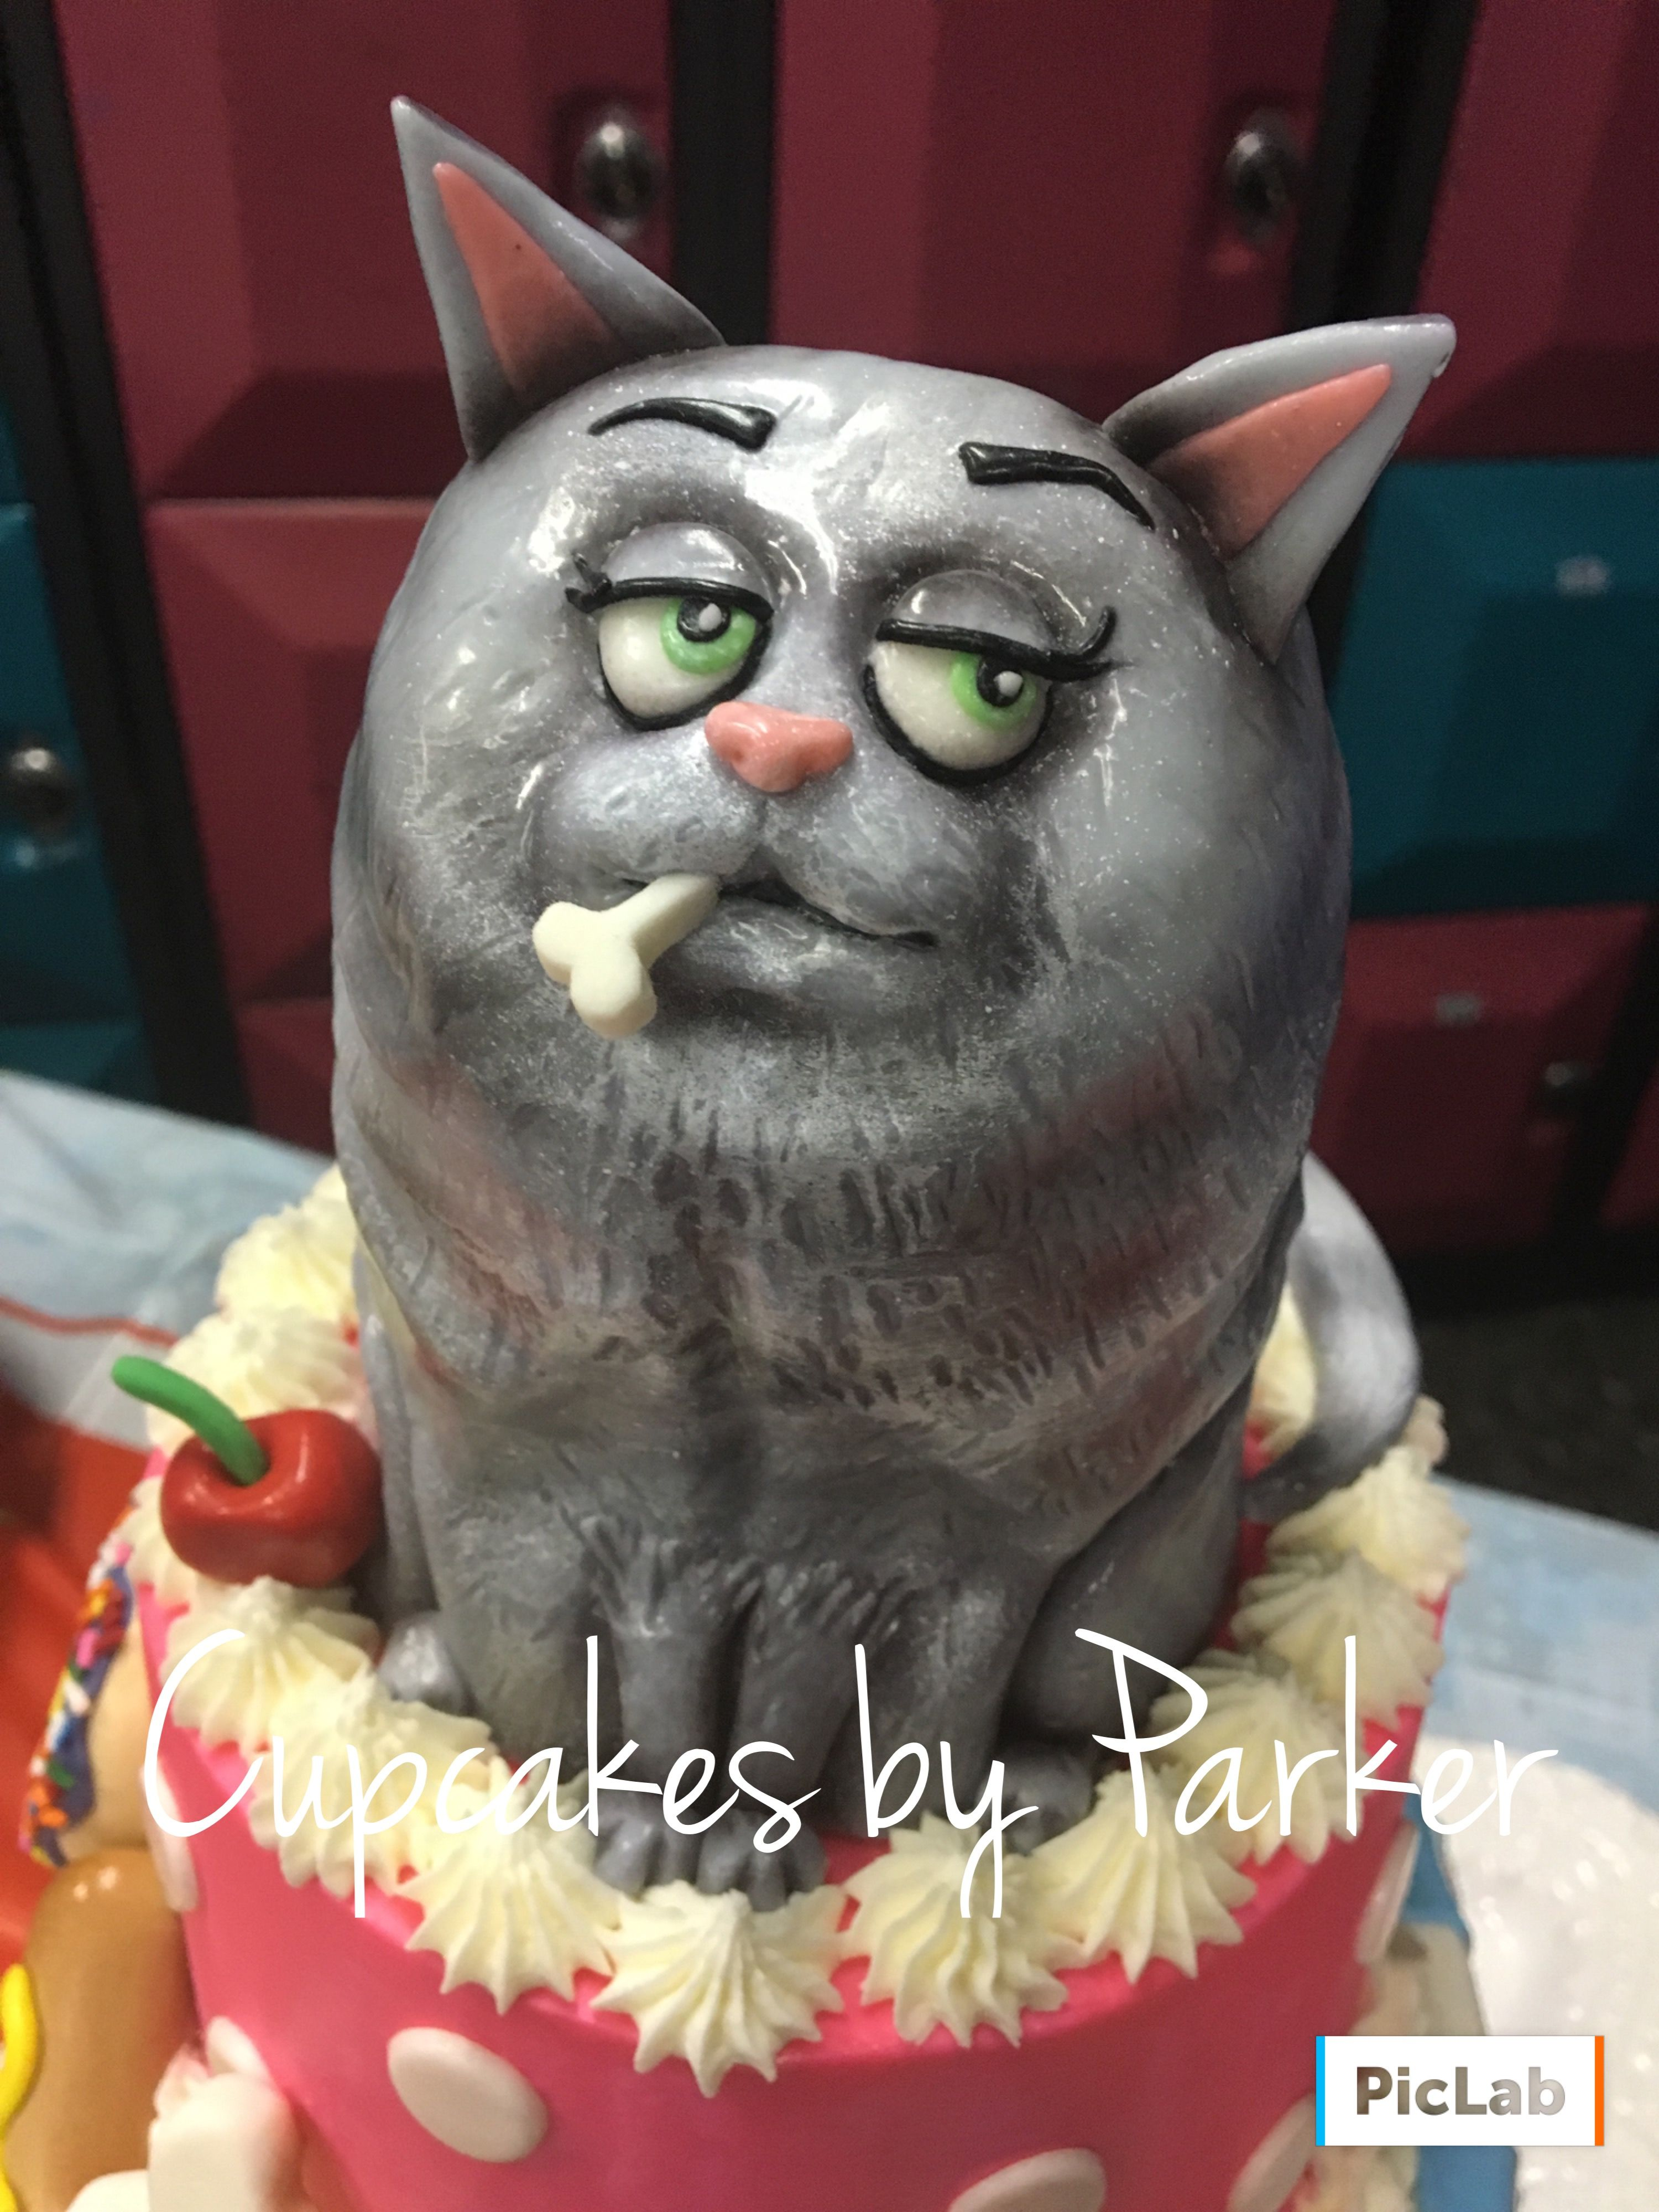 Chloe The Cat Cake From Secret Life Of Pets Cake Made My Kristin Parker From Cupcakes By Parker Cat Cake Secret Life Of Pets Pets Cats